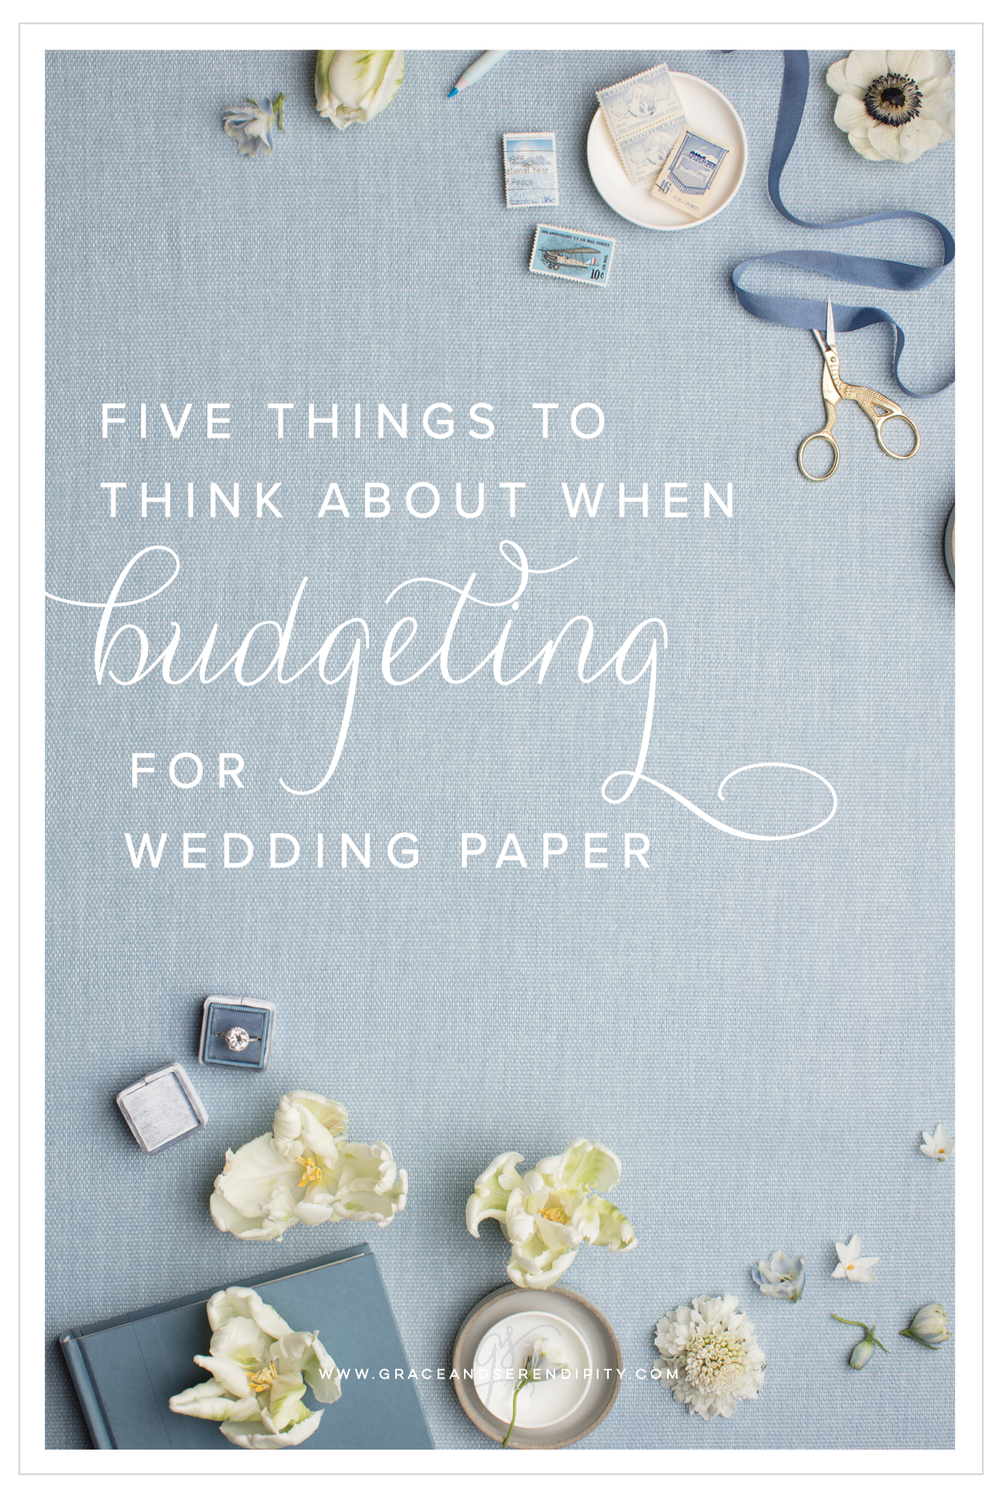 gs - ss site - blog - budgeting tips for wedding paper.png